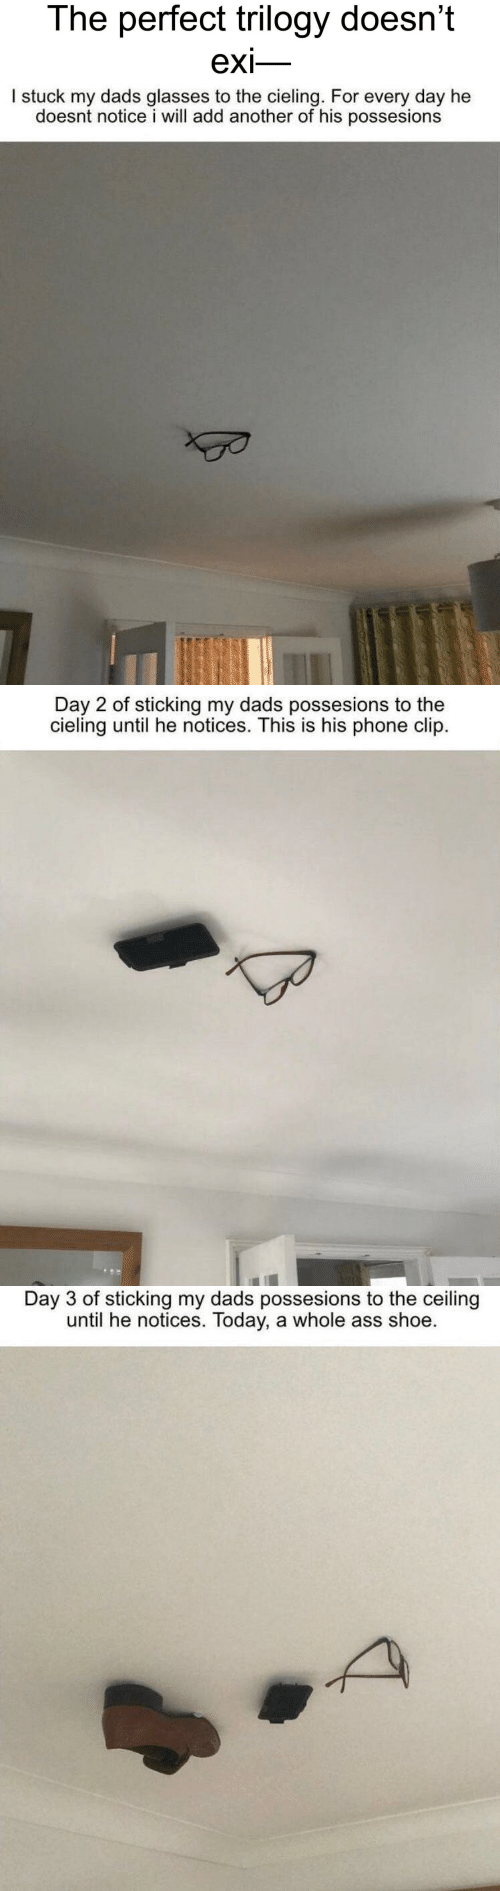 every day: The perfect trilogy doesn't  exi-   I stuck my dads glasses to the cieling. For every day he  doesnt notice i will add another of his possesions   Day 2 of sticking my dads possesions to the  cieling until he notices. This is his phone clip.   Day 3 of sticking my dads possesions to the ceiling  until he notices. Today, a whole ass shoe.